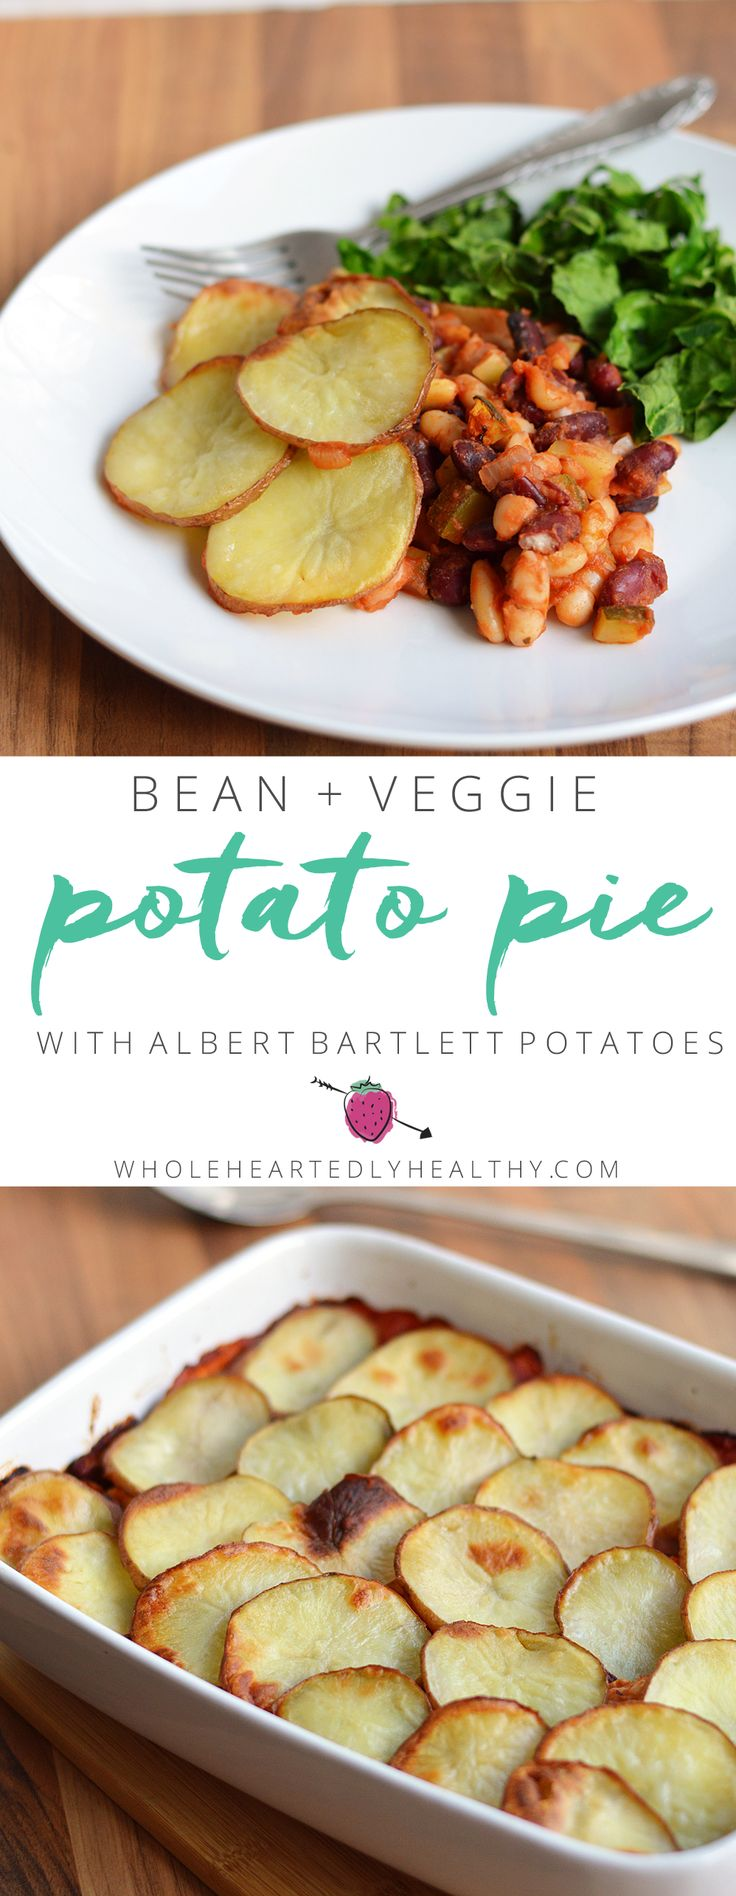 Vegan Bean and Vegetable Potato Pie using Albert Bartlett Rooster Potatoes, delicious healthy family meal!